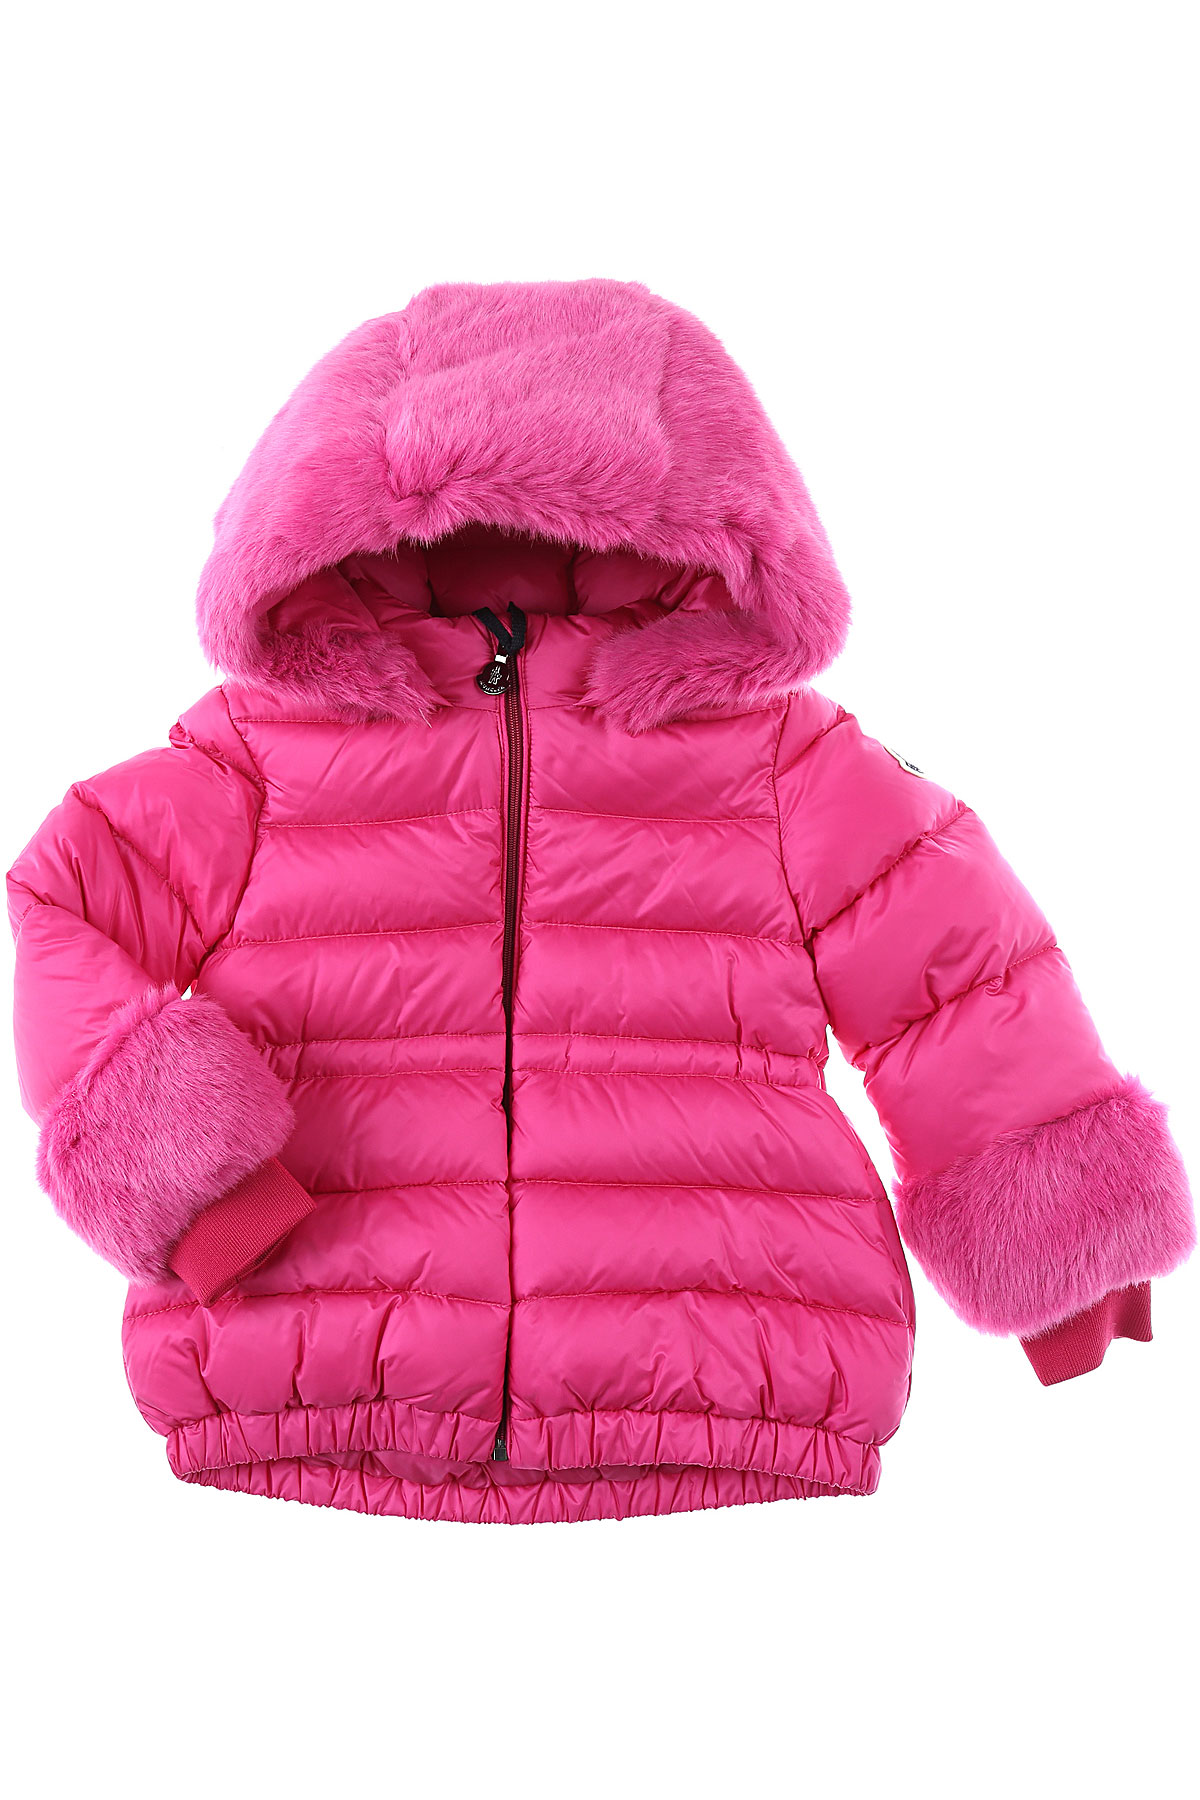 Moncler Baby Down Jacket for Girls On Sale, fucsia, polyamide, 2019, 12M 24M 2Y 3Y